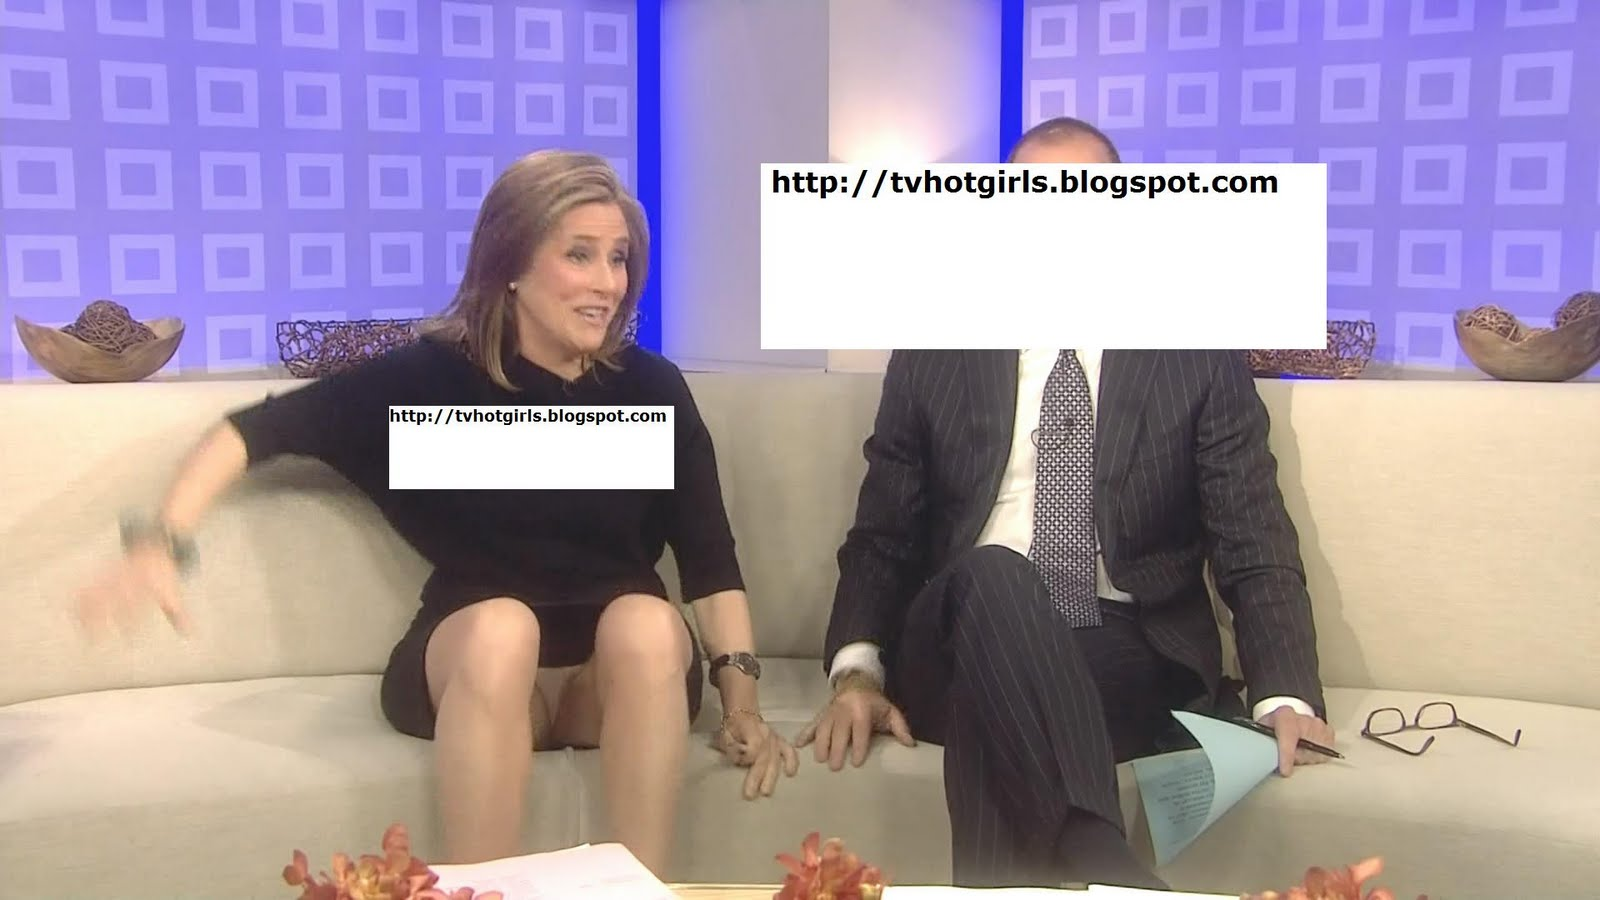 News anchor upskirts the